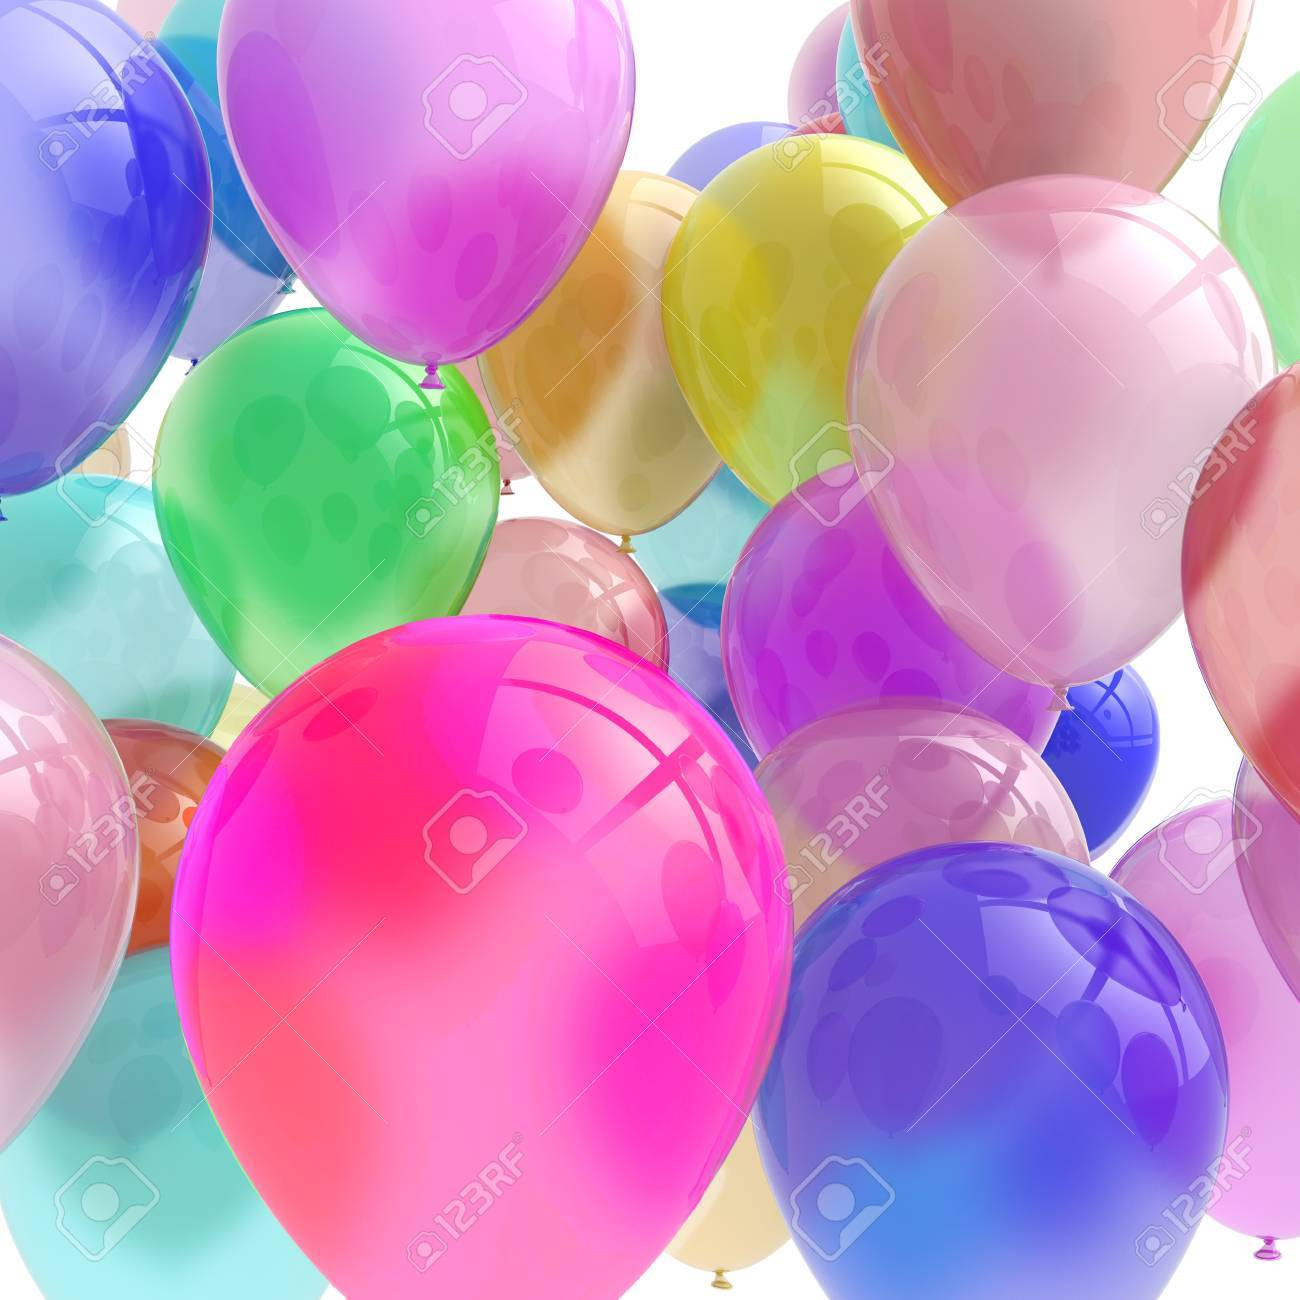 This lovely 3D rendered image of balloons could have many uses - 17991307